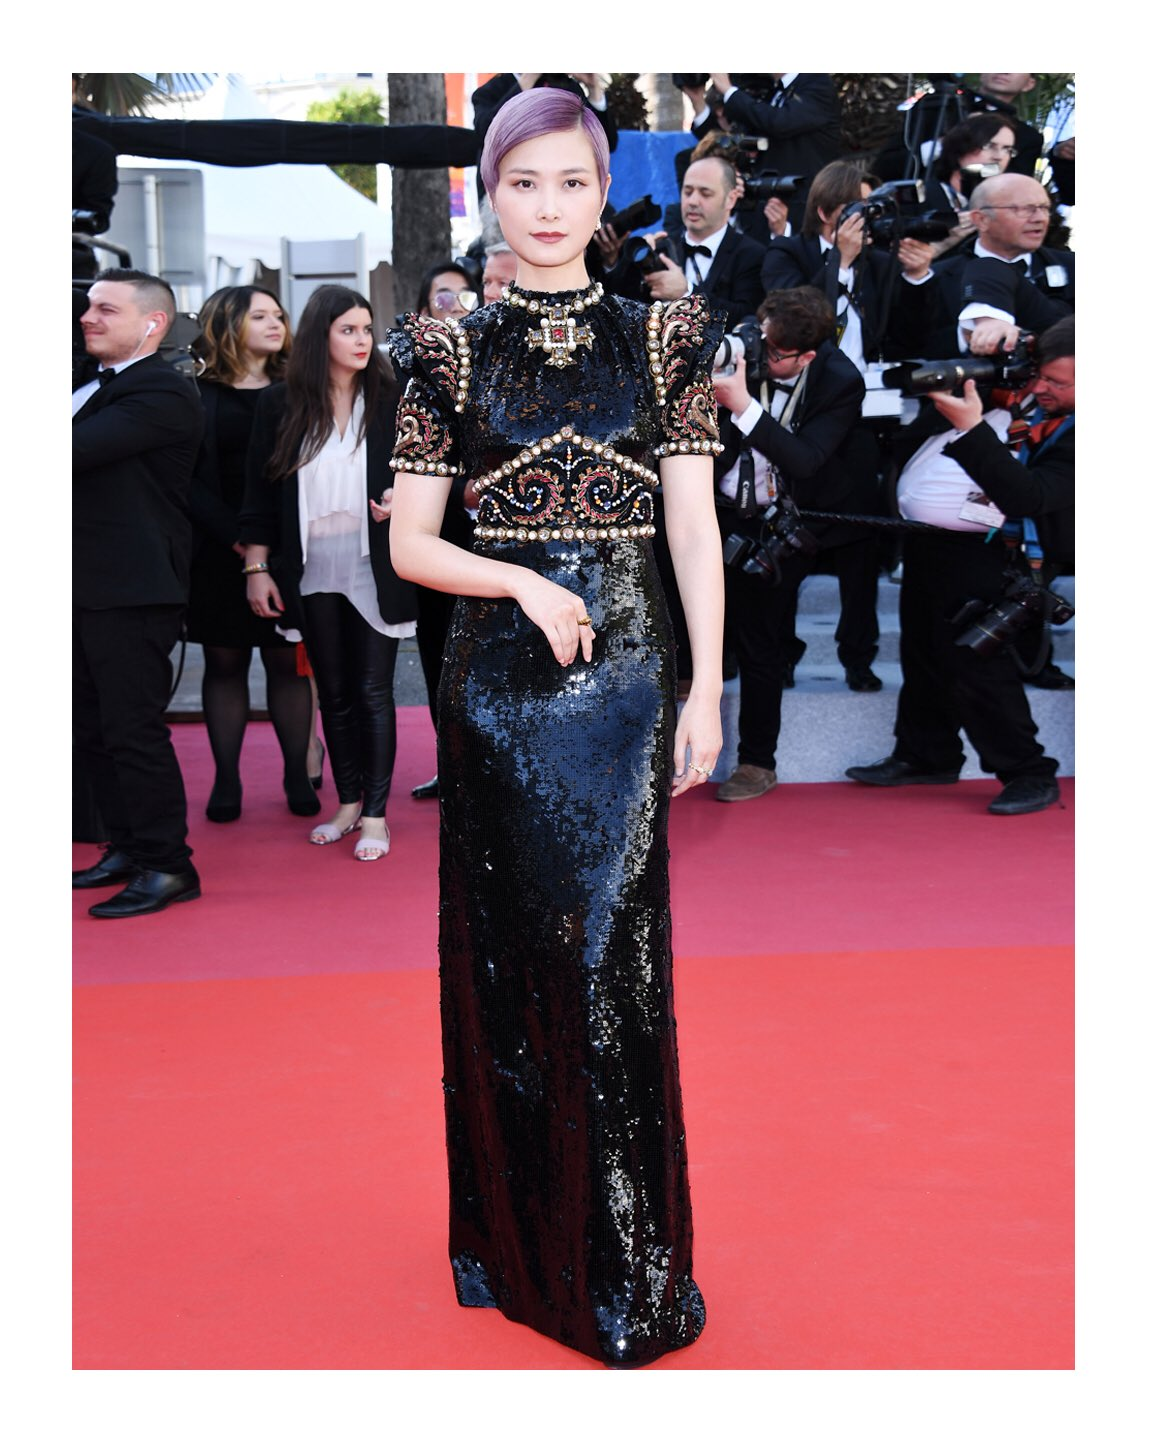 #ChrisLee wore a #Gucci all-over sequin embroidered gown and a selection of #GucciJewelry pieces designed by #AlessandroMichele to the 72nd @Festival_Cannes. #Cannes2019 https://t.co/Ek54e8yfYD